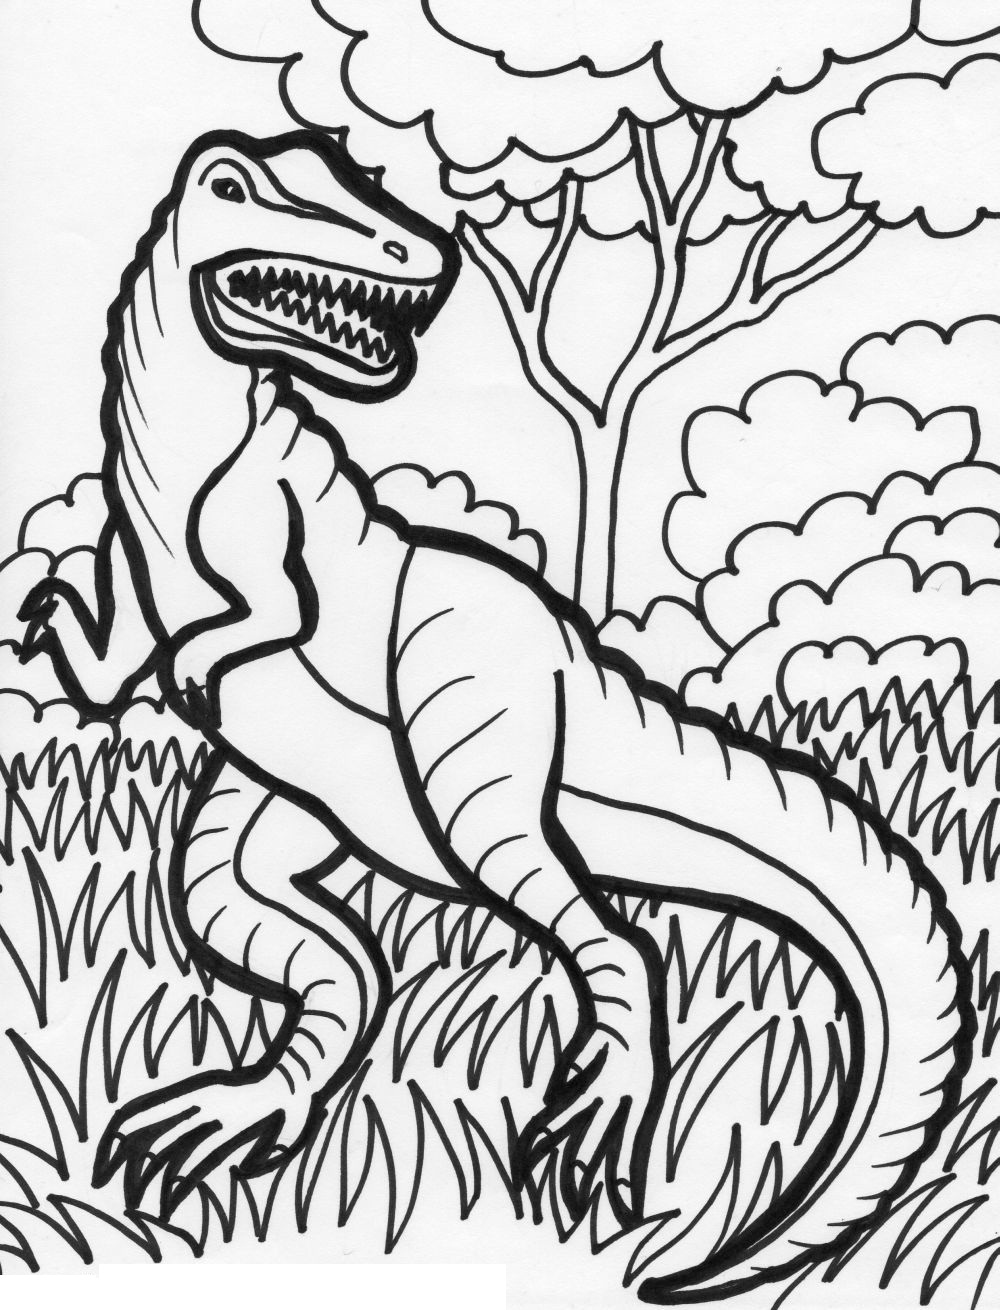 dinsaur coloring pages - photo#29